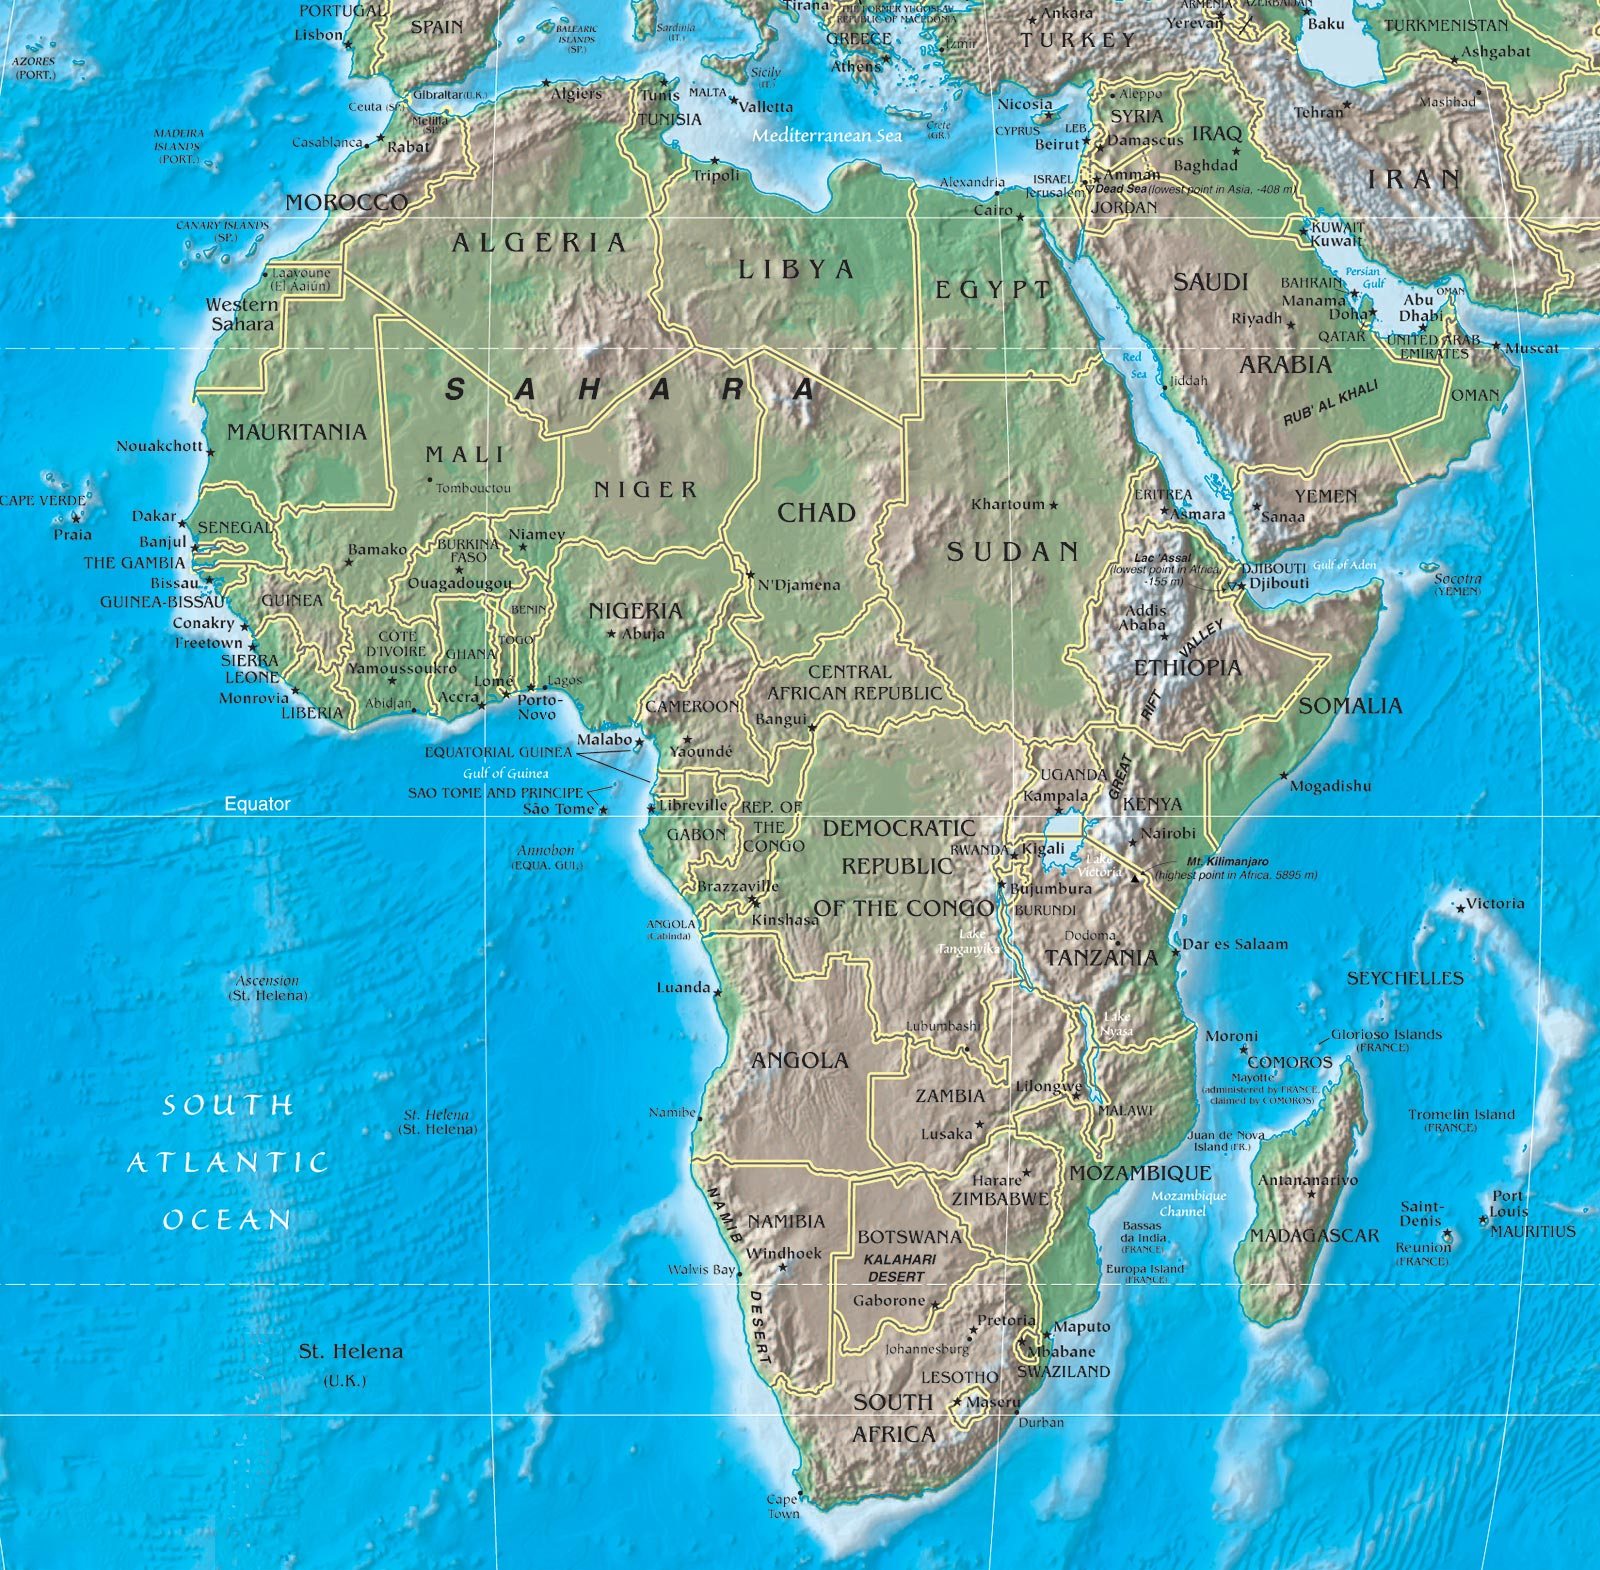 Africa S Physical Features